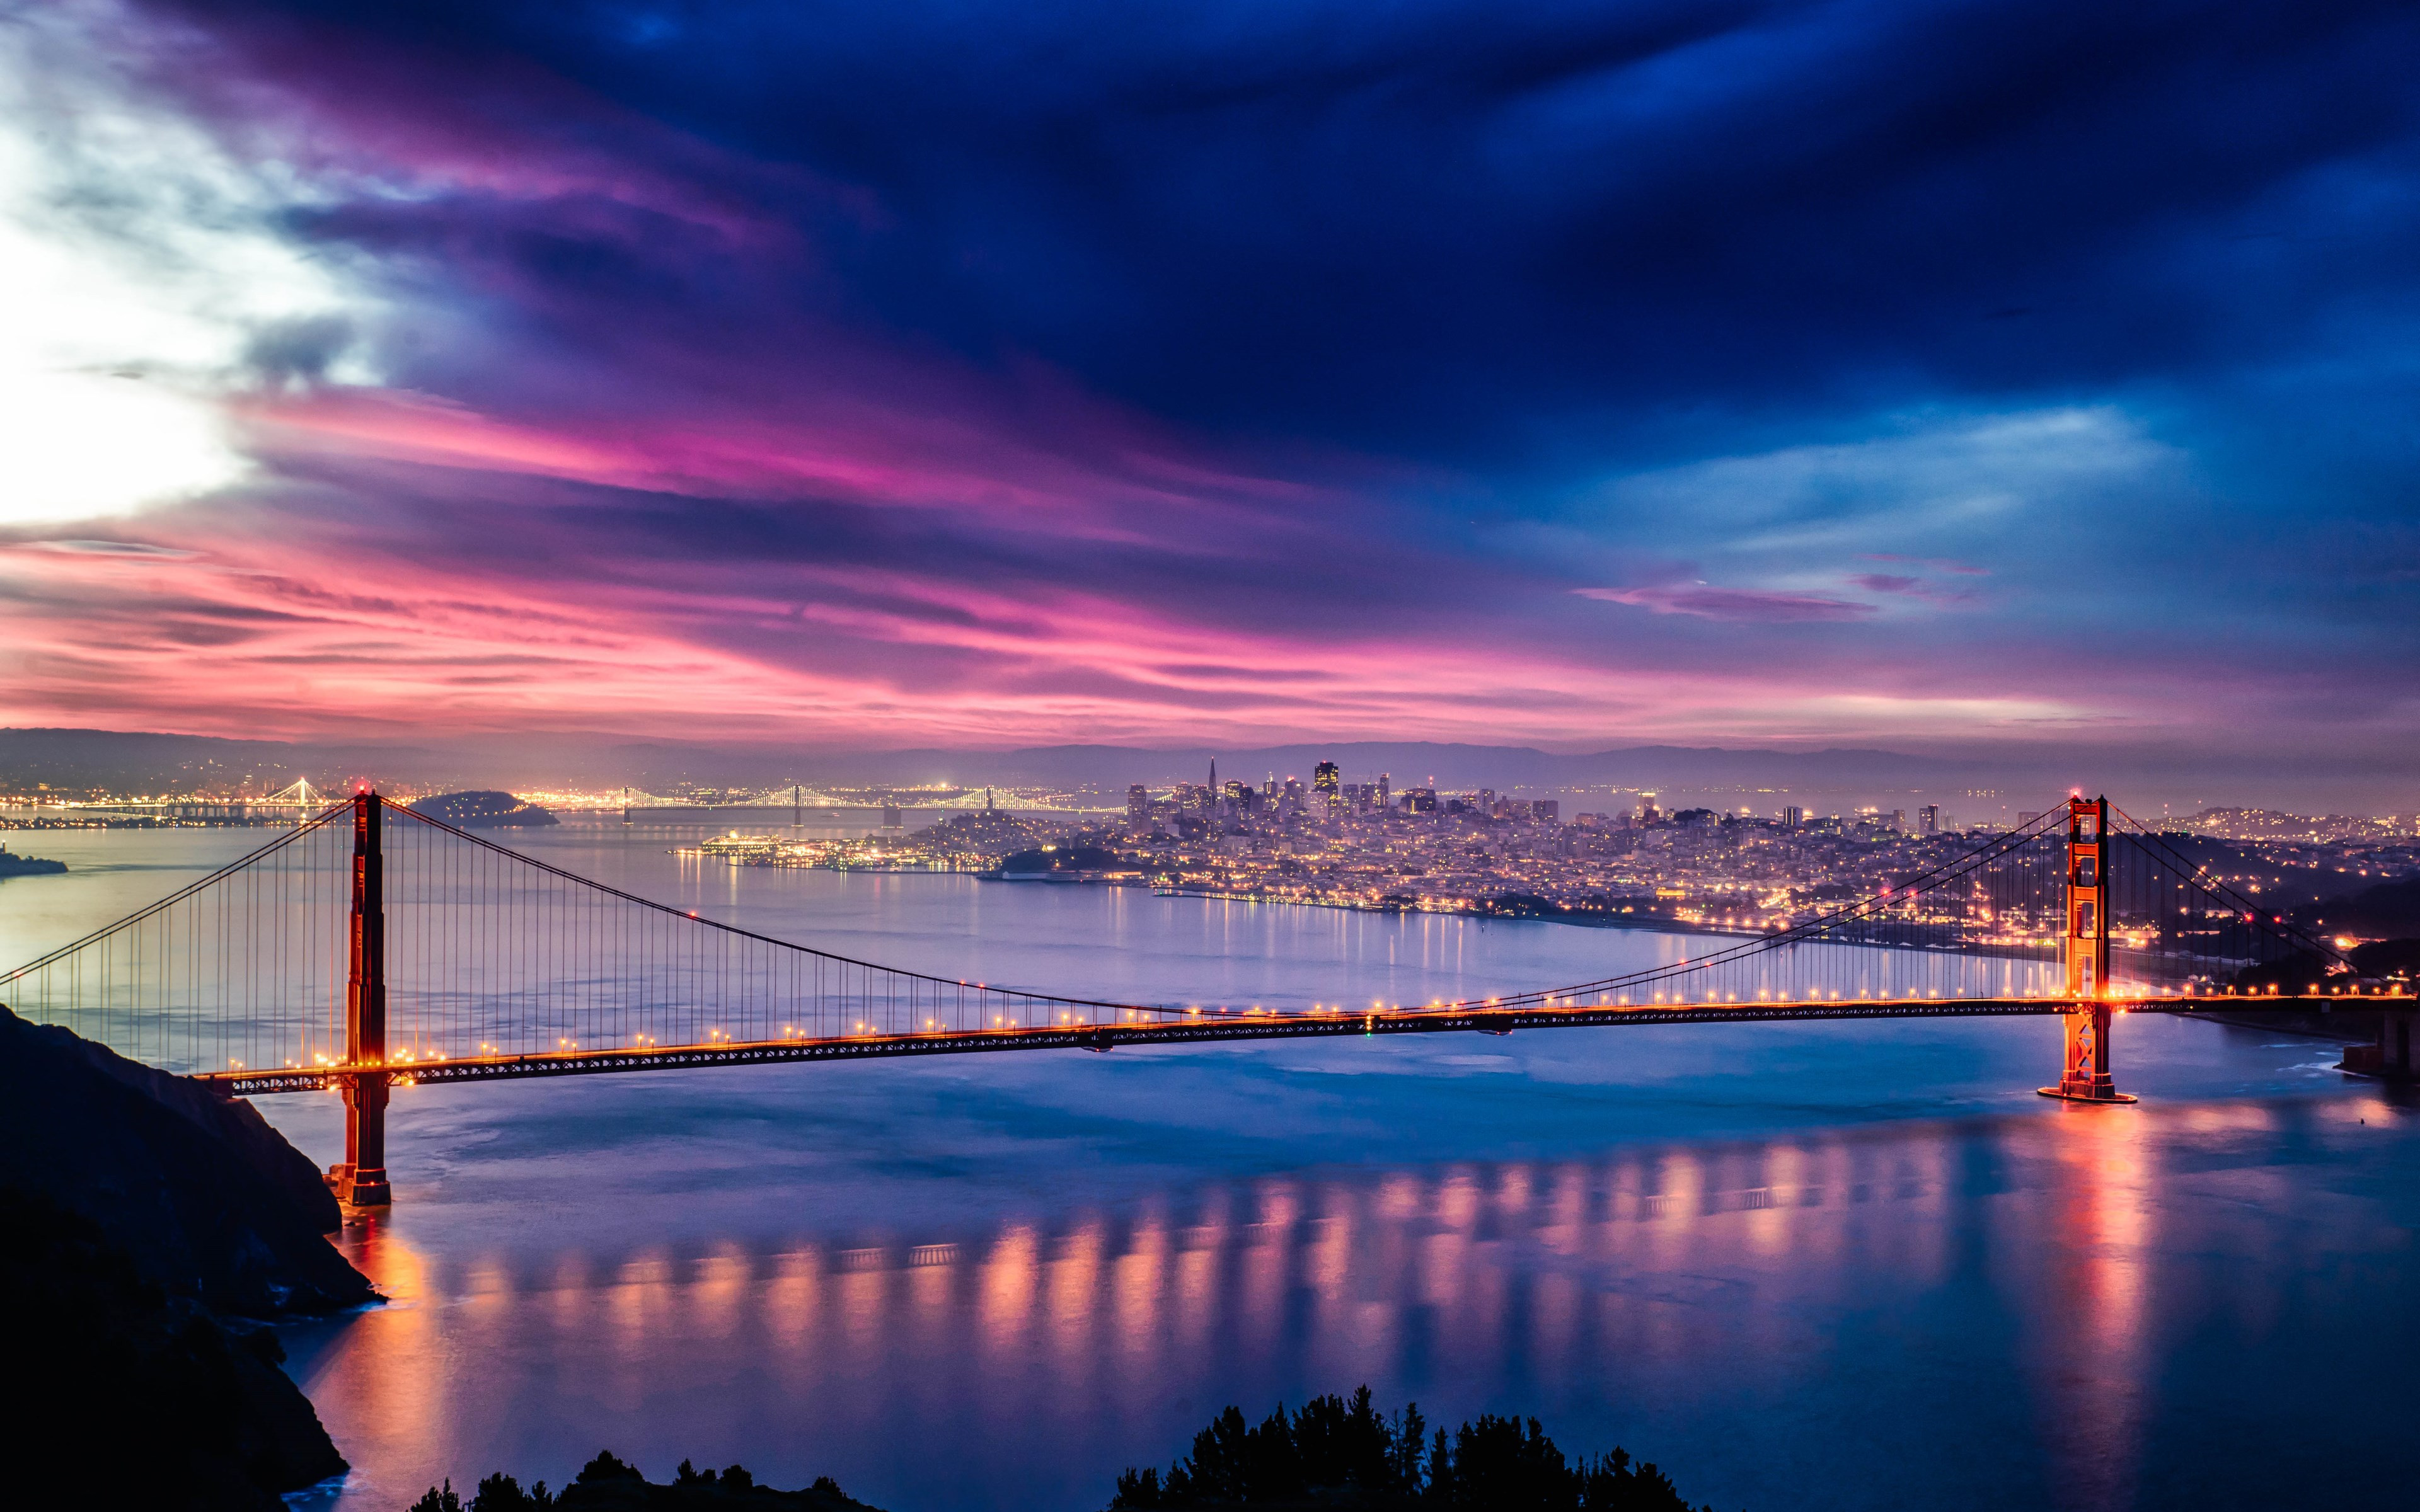 Skyfire over San Francisco Bay Bridge wallpaper 3840x2400